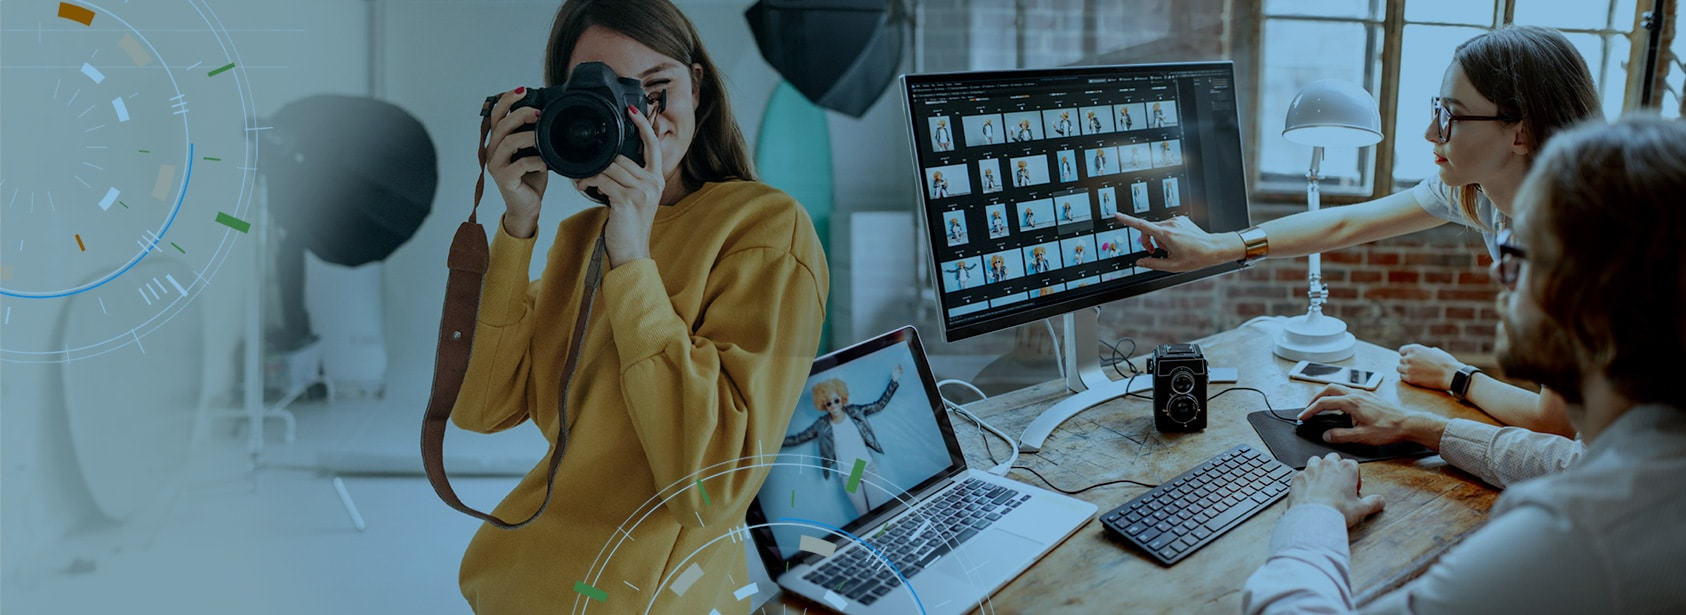 Online Bachelors Degree in Digital Photography at Sessions College